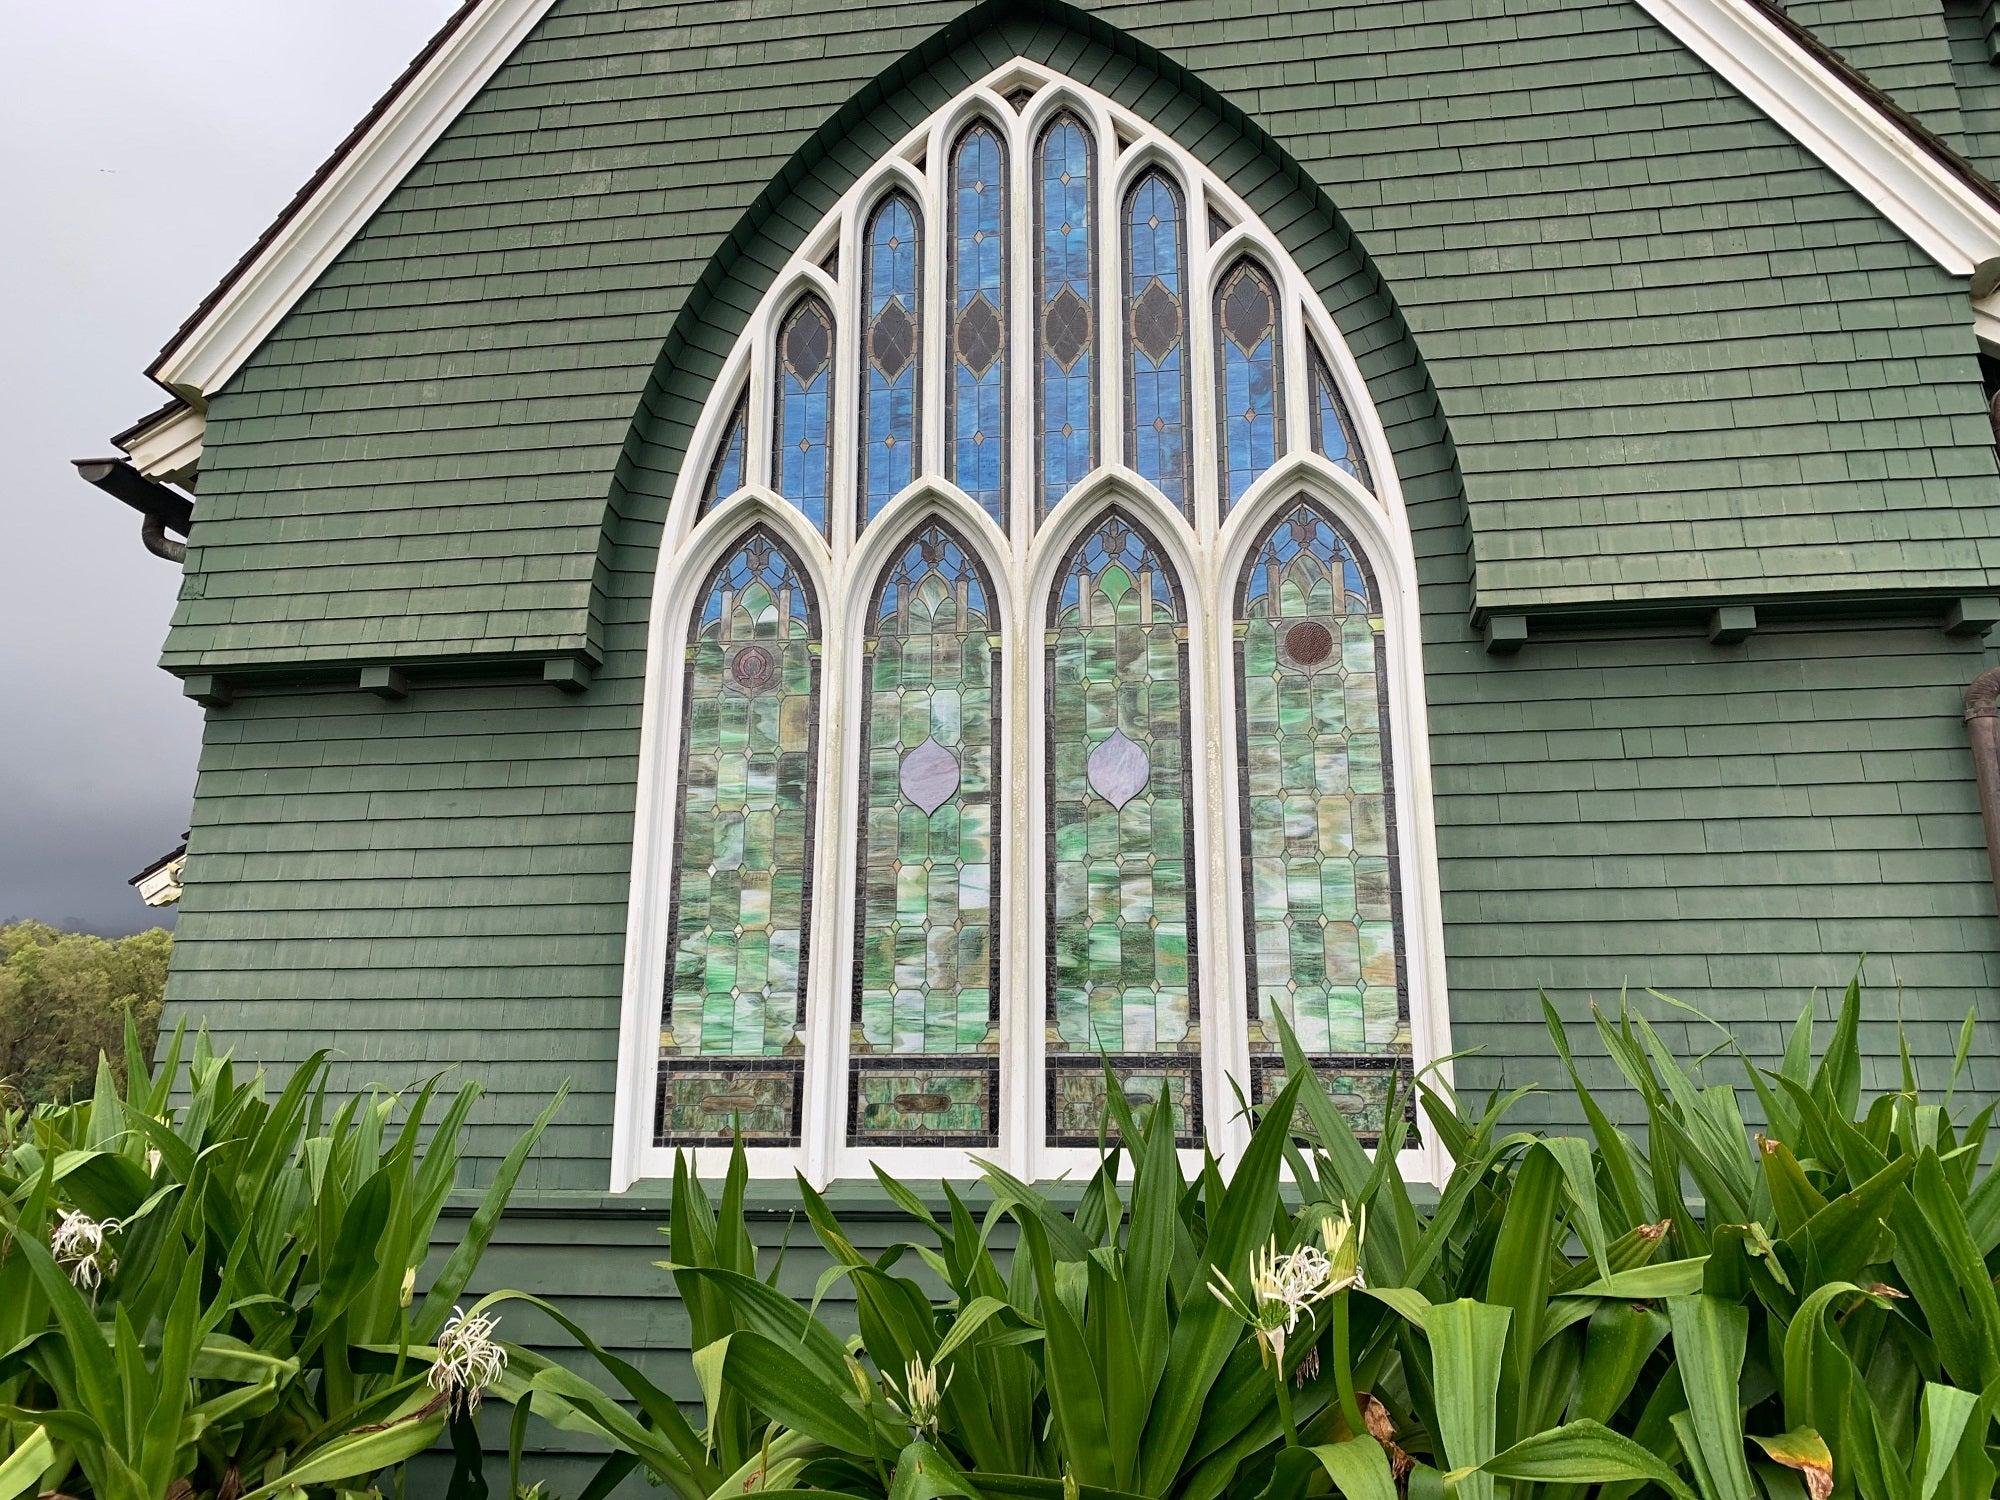 Hanalei Church Stained Glass Windows